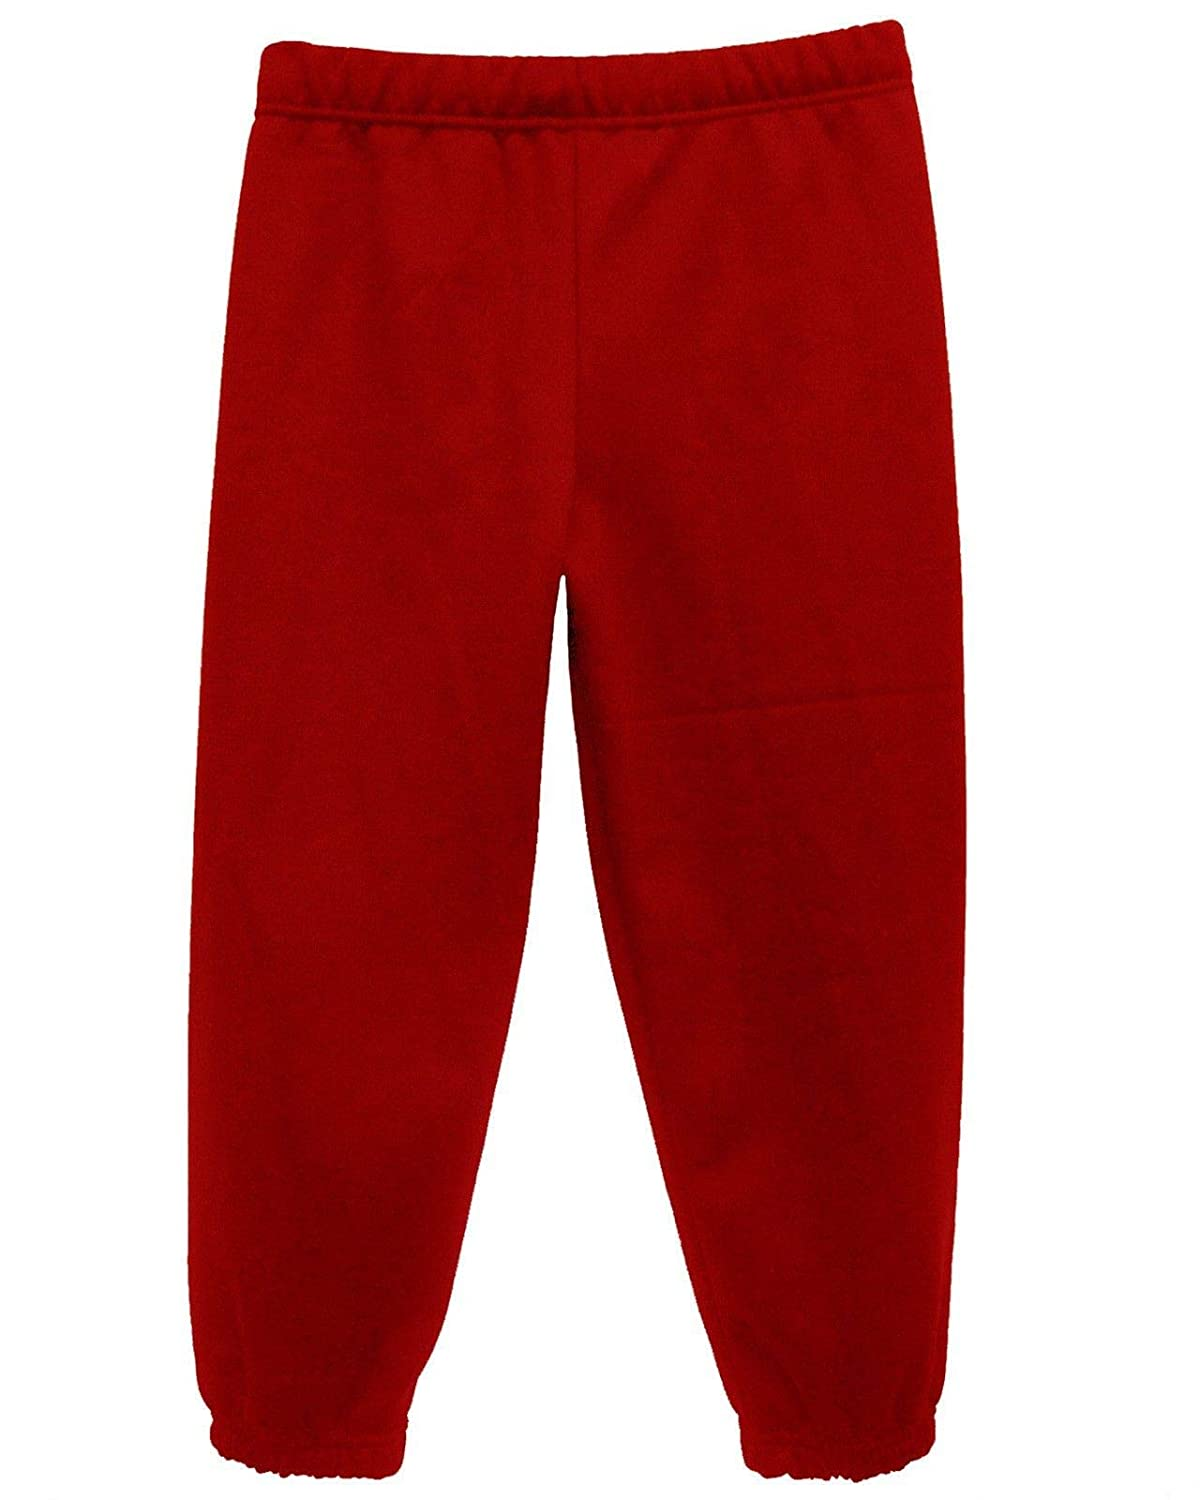 New Unisex Children Kids School PE Fleece Jogging Tracksuit Bottoms Trousers